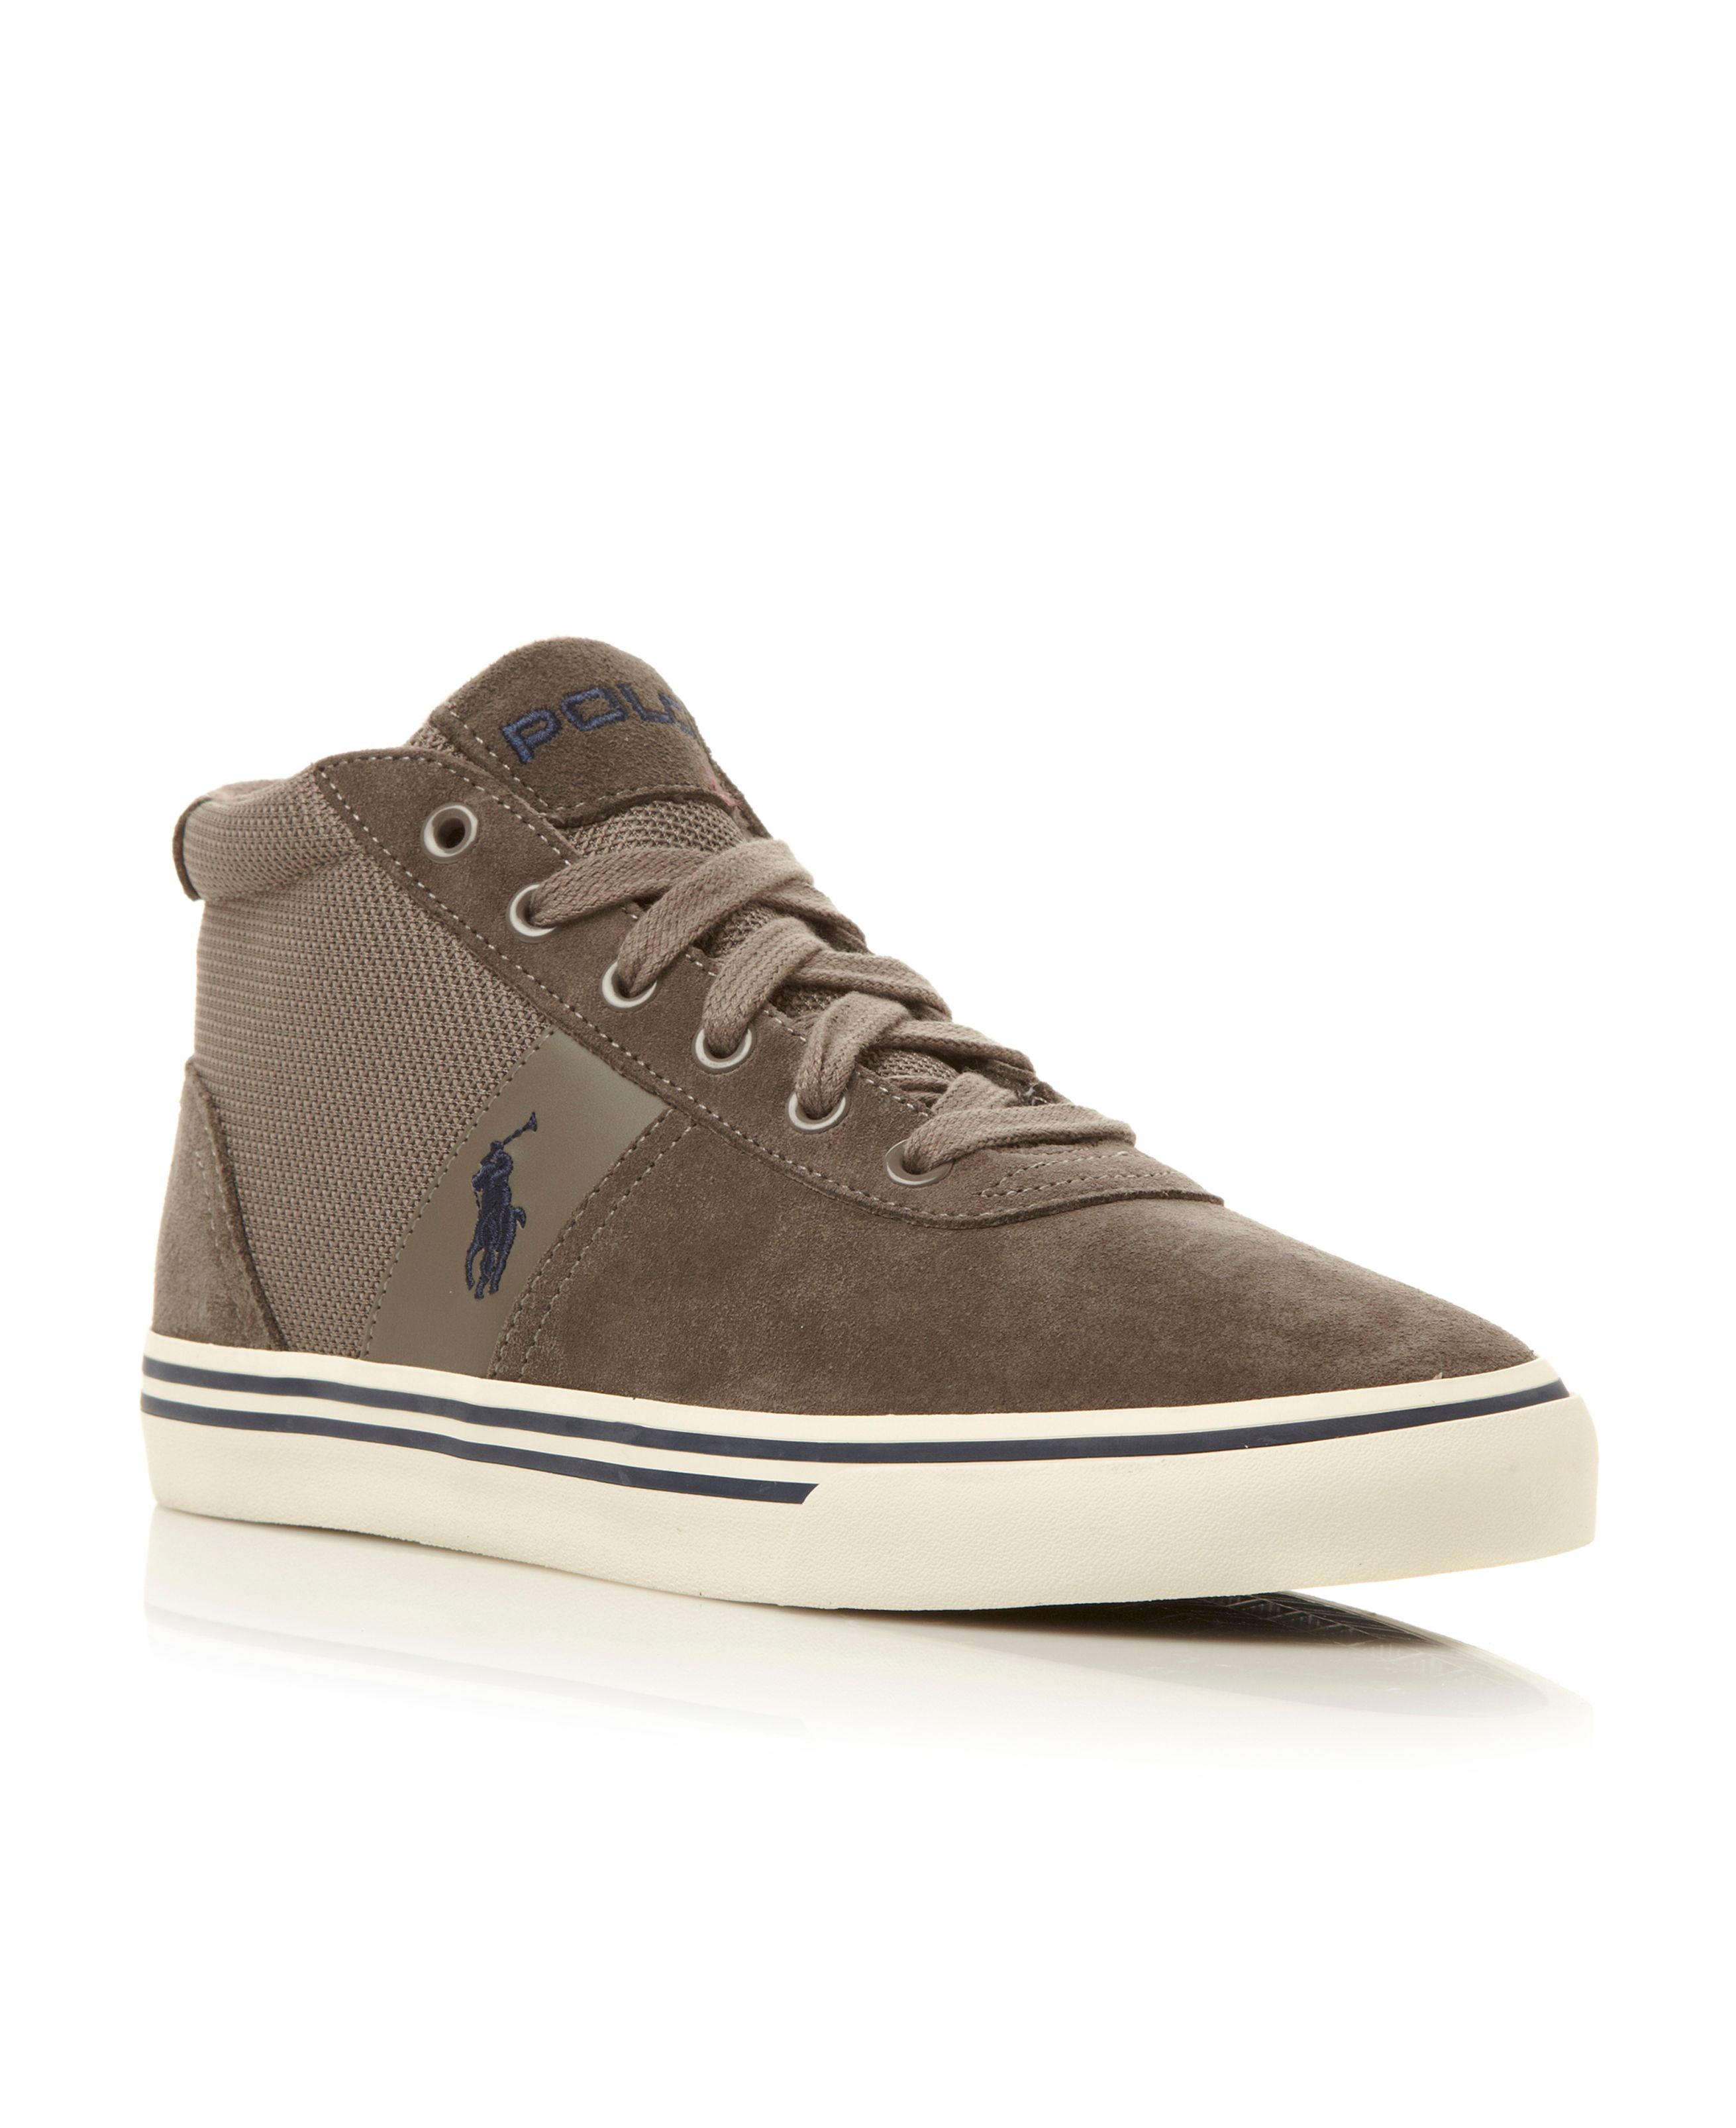 Hanford mid vulcanised suede hi top